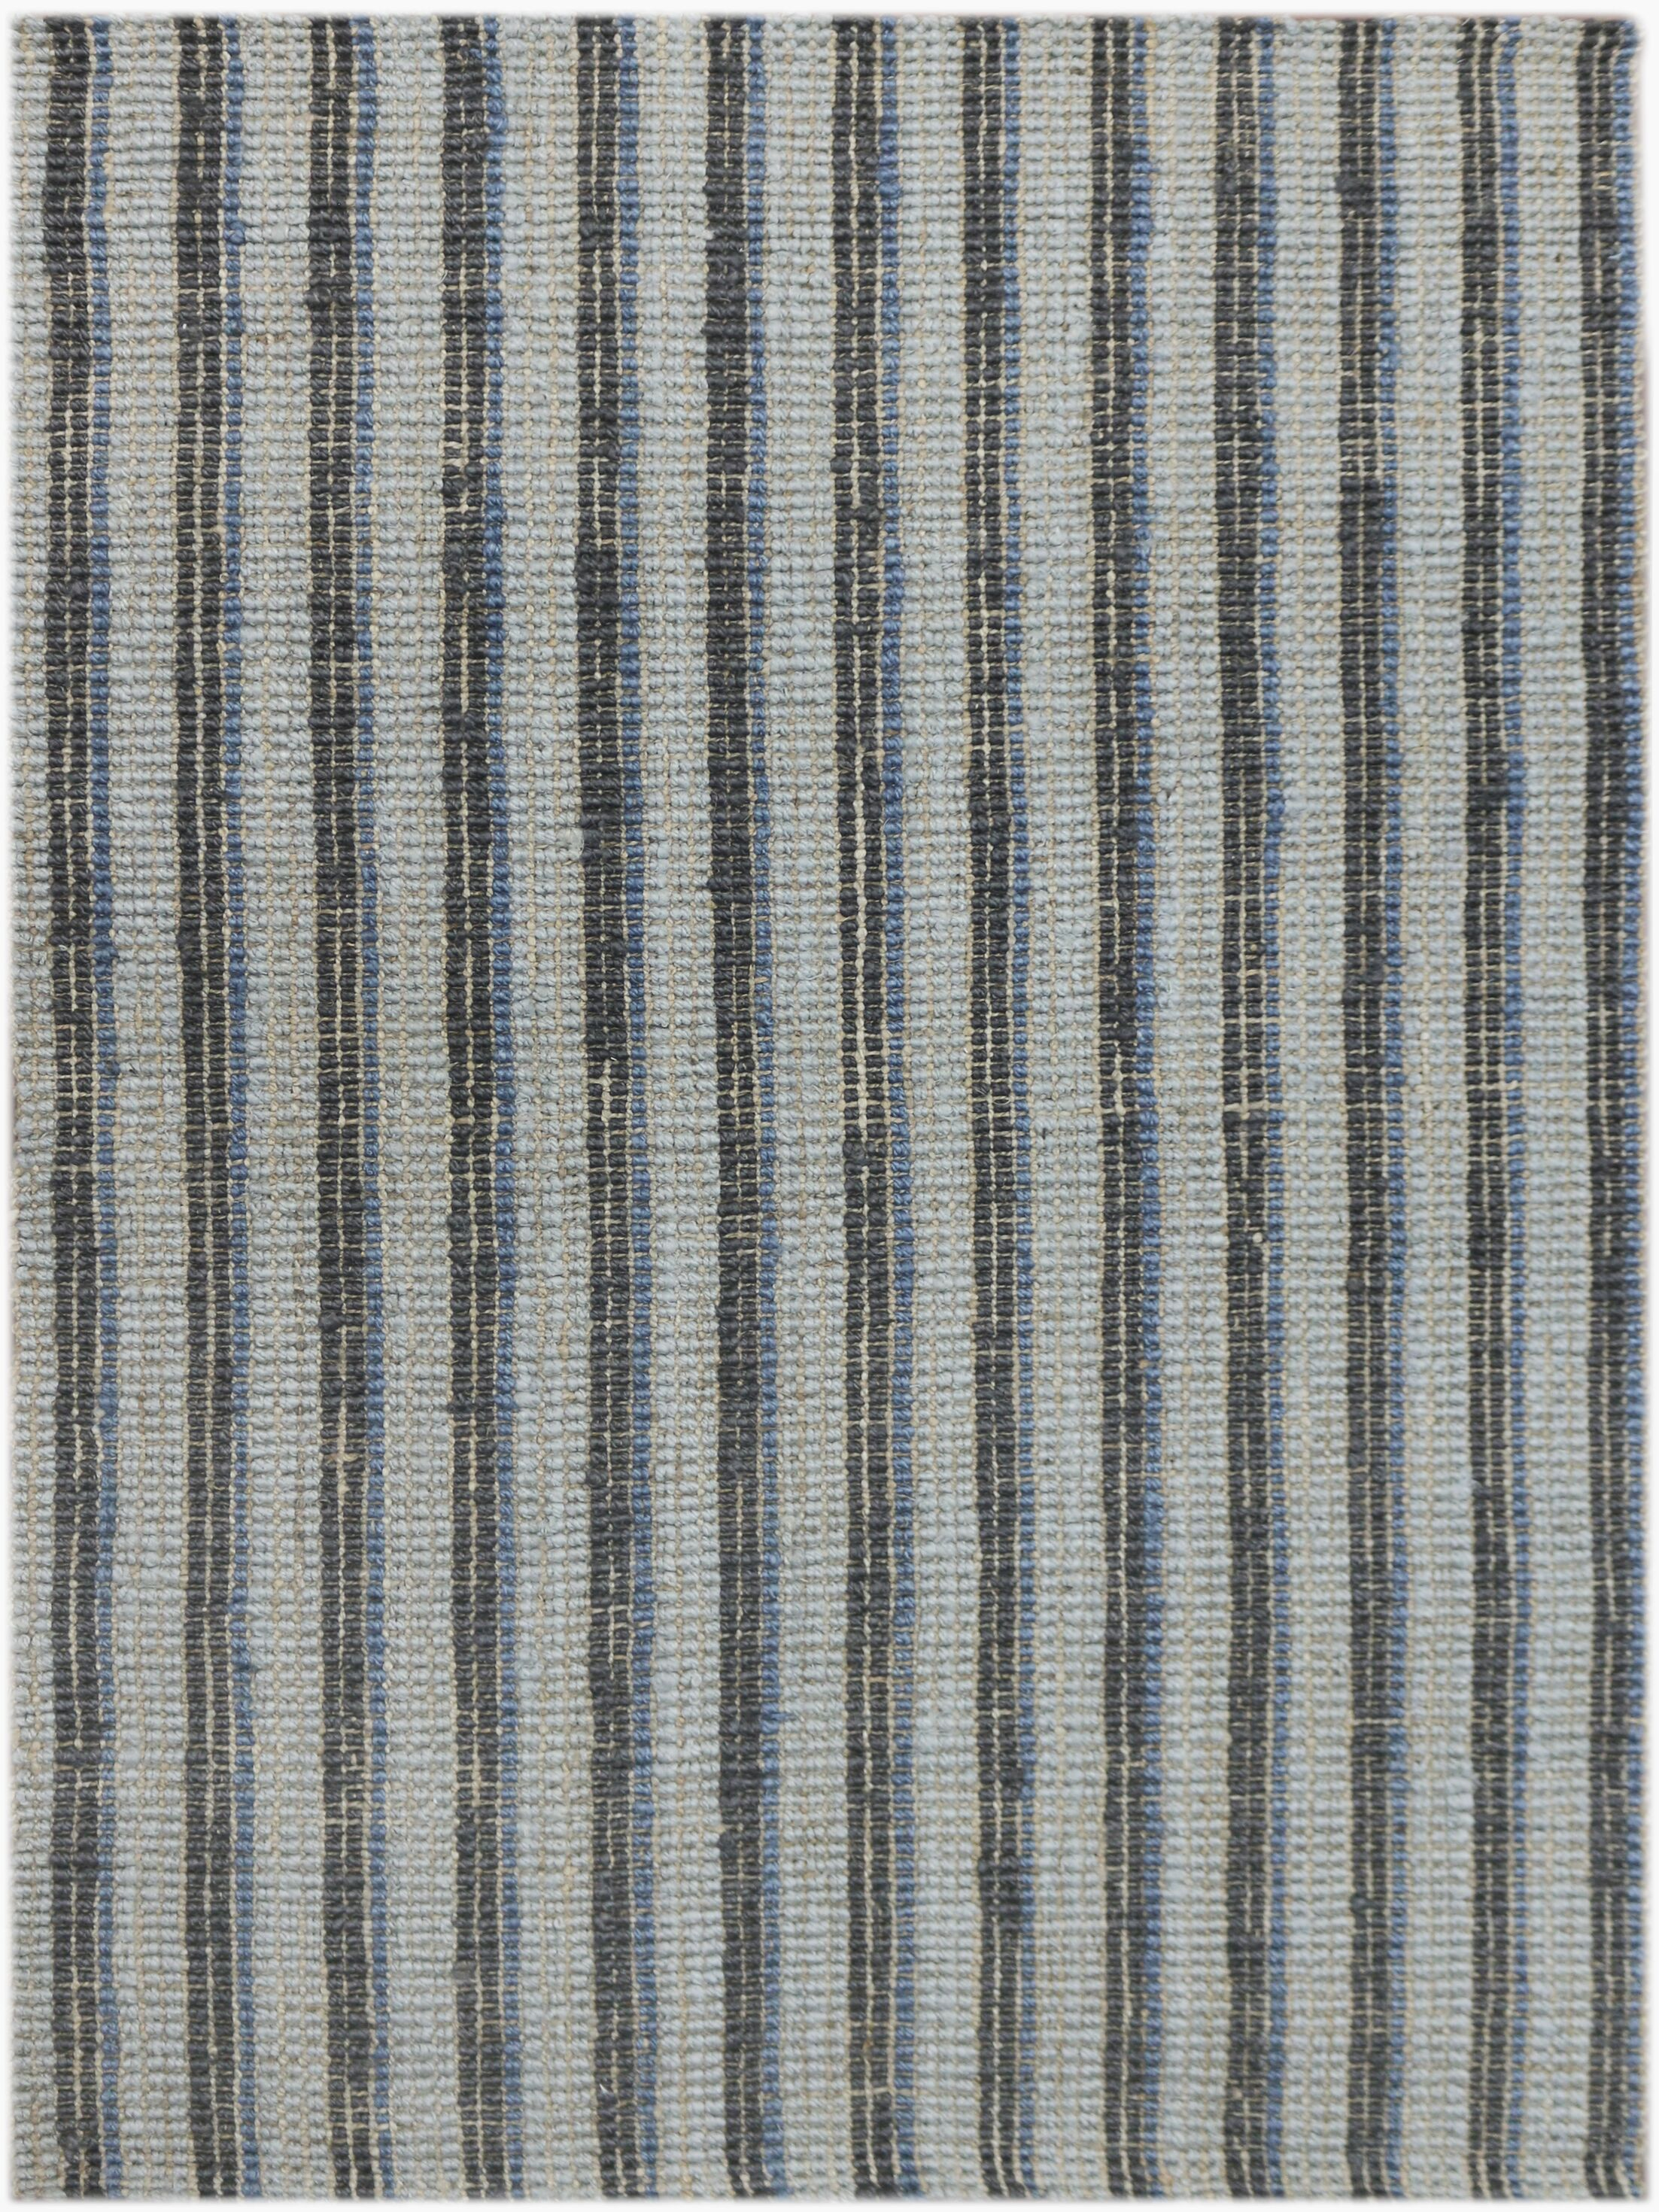 Koleby Striped Hand-Woven Blue Area Rug Rug Size: Runner 2'3